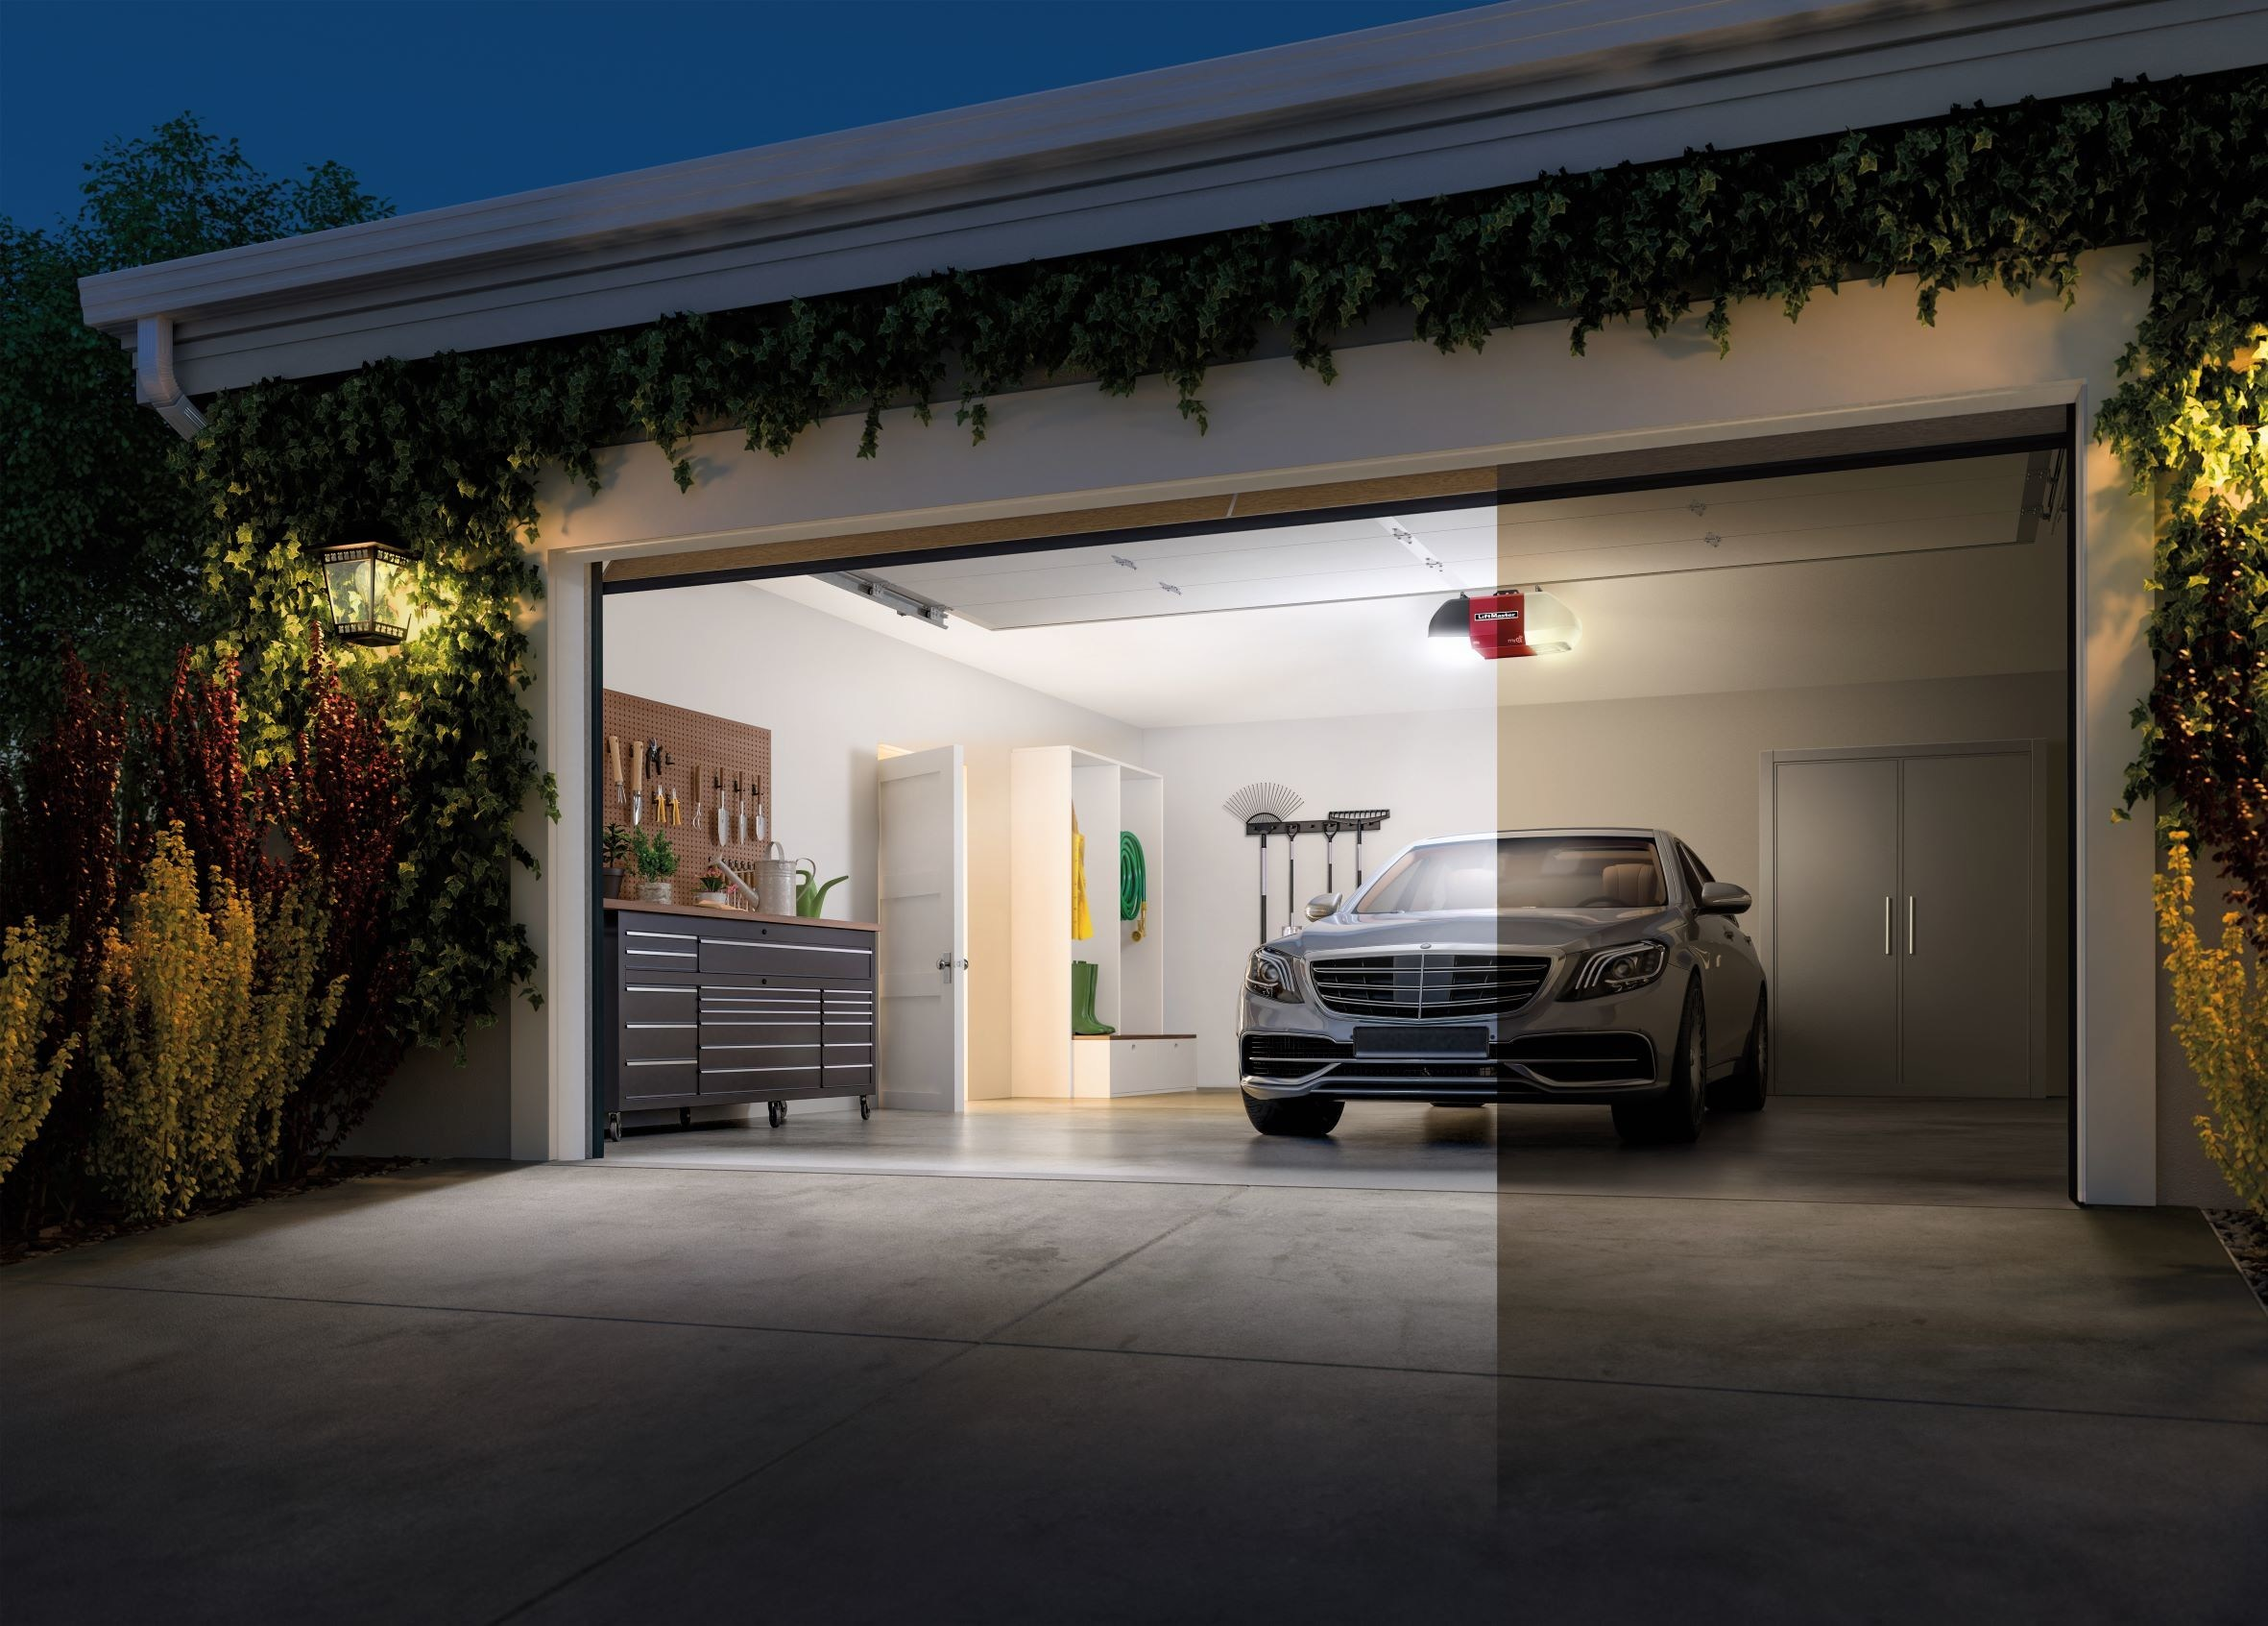 See Your Garage in An All-New Light with the LiftMaster WLED Garage